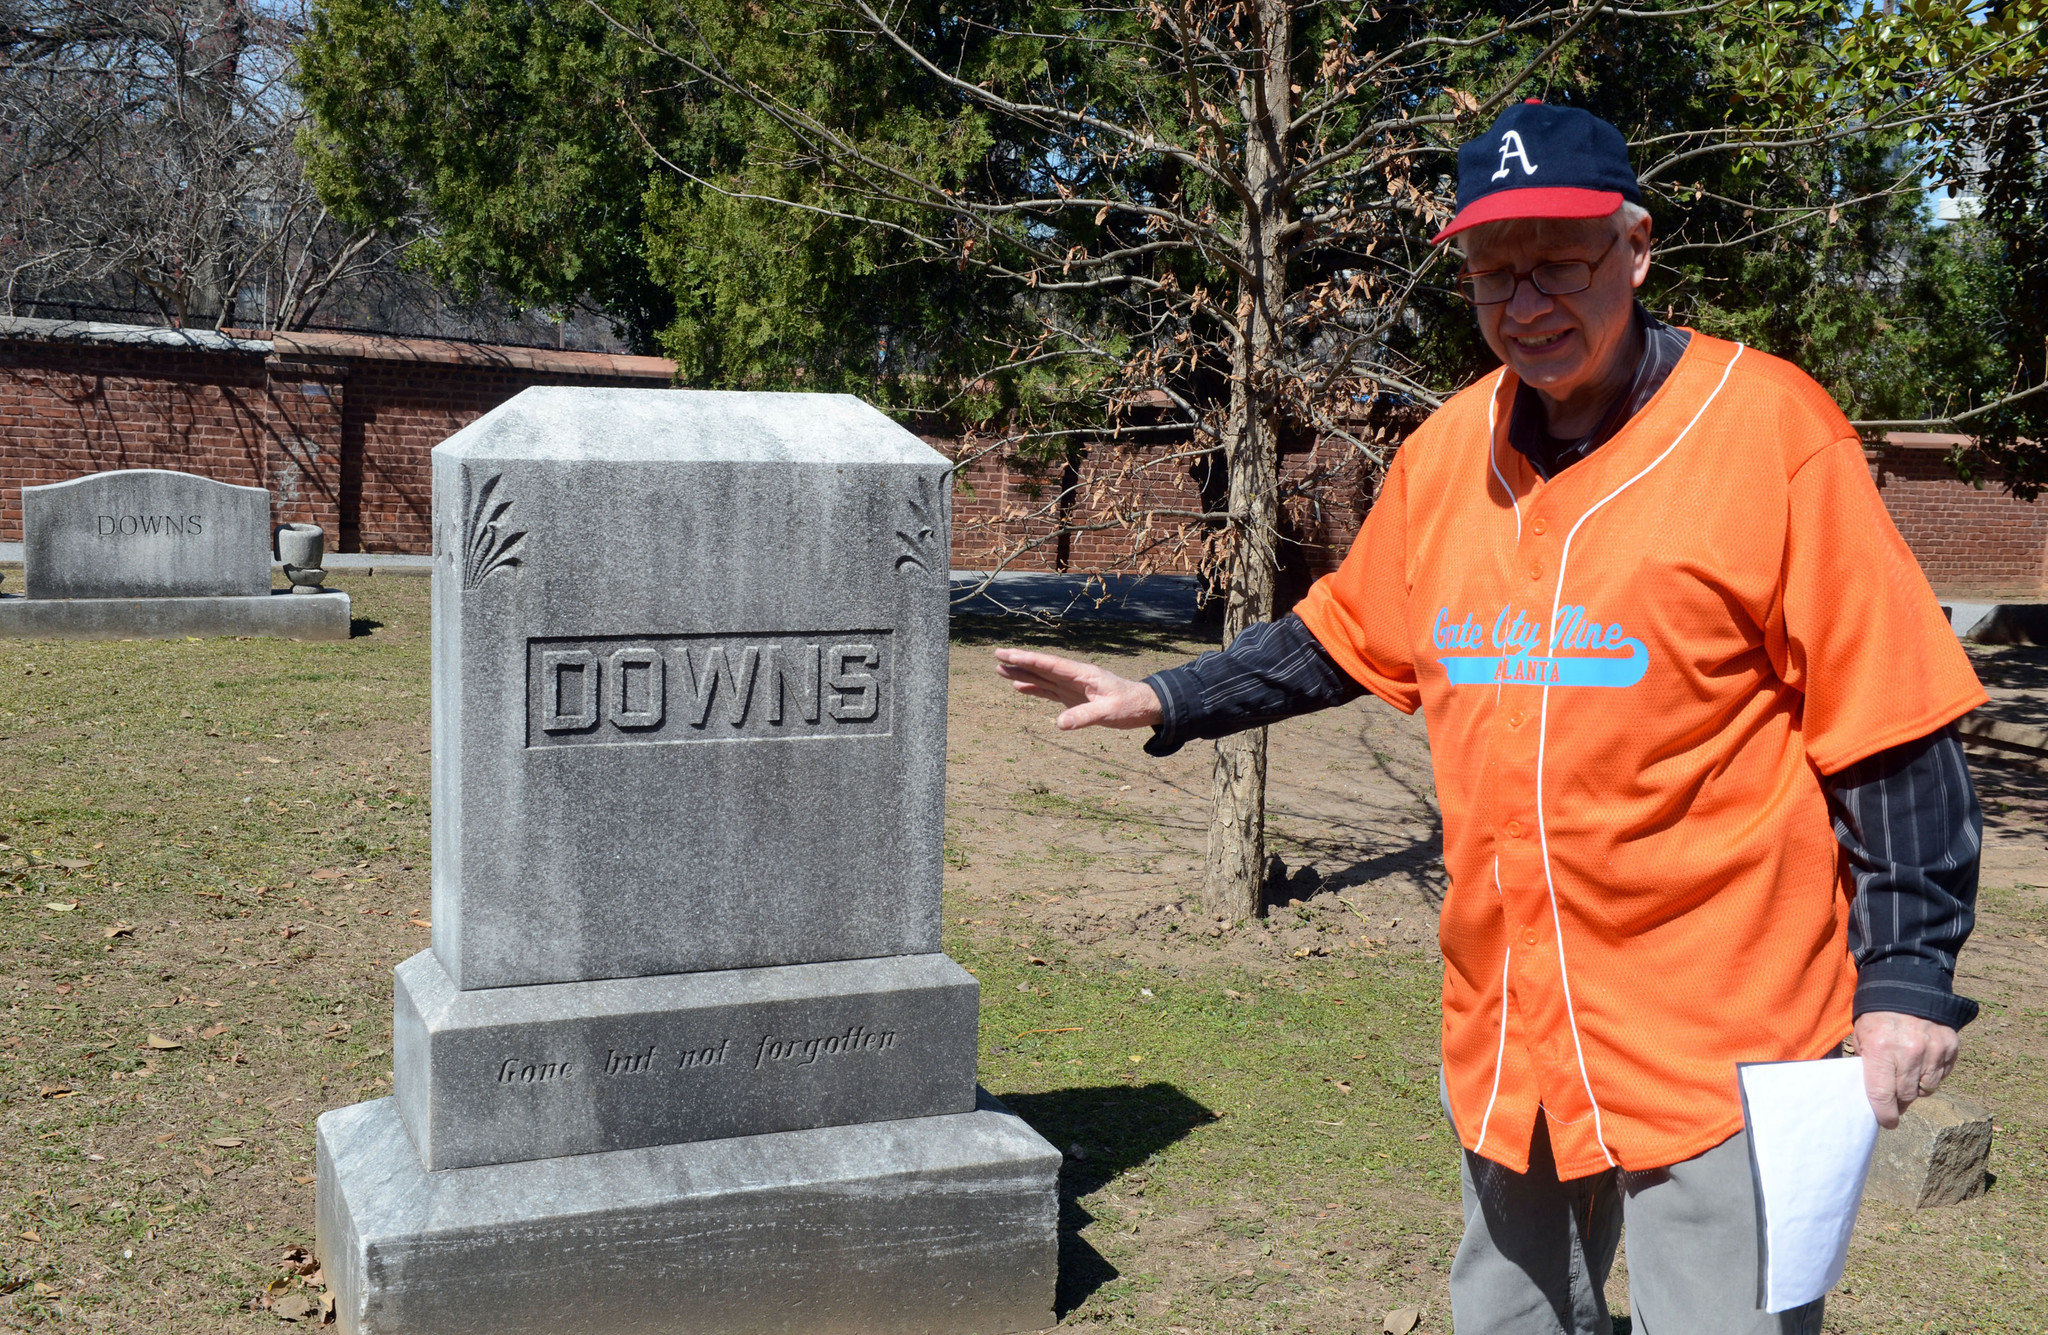 Pictures: Atlanta baseball cemetery tour - Atlanta baseball cemetery tour